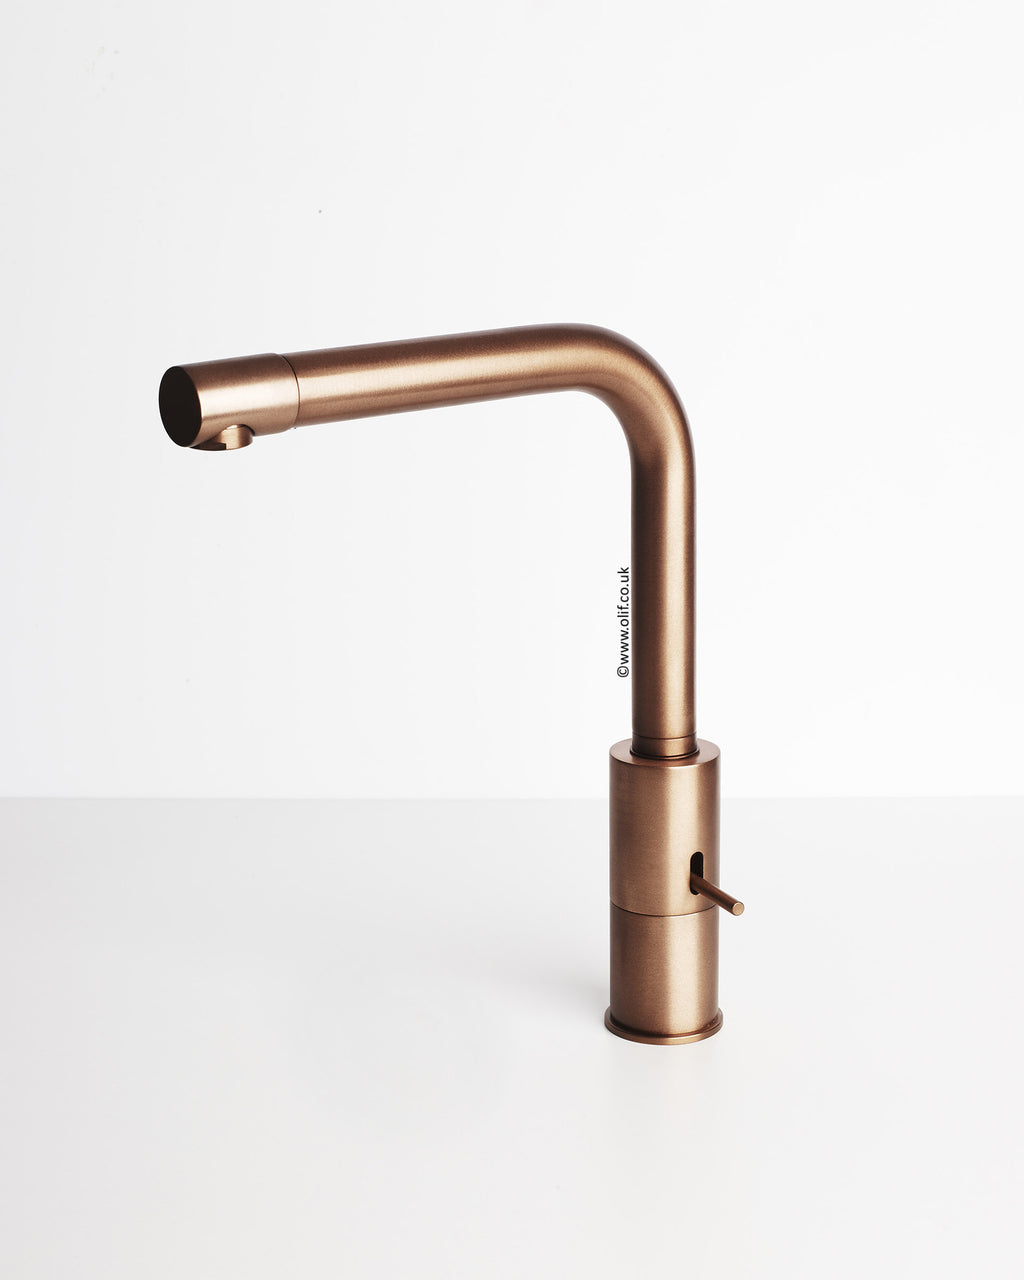 Splendido Rustic Copper, kitchen mixer tap